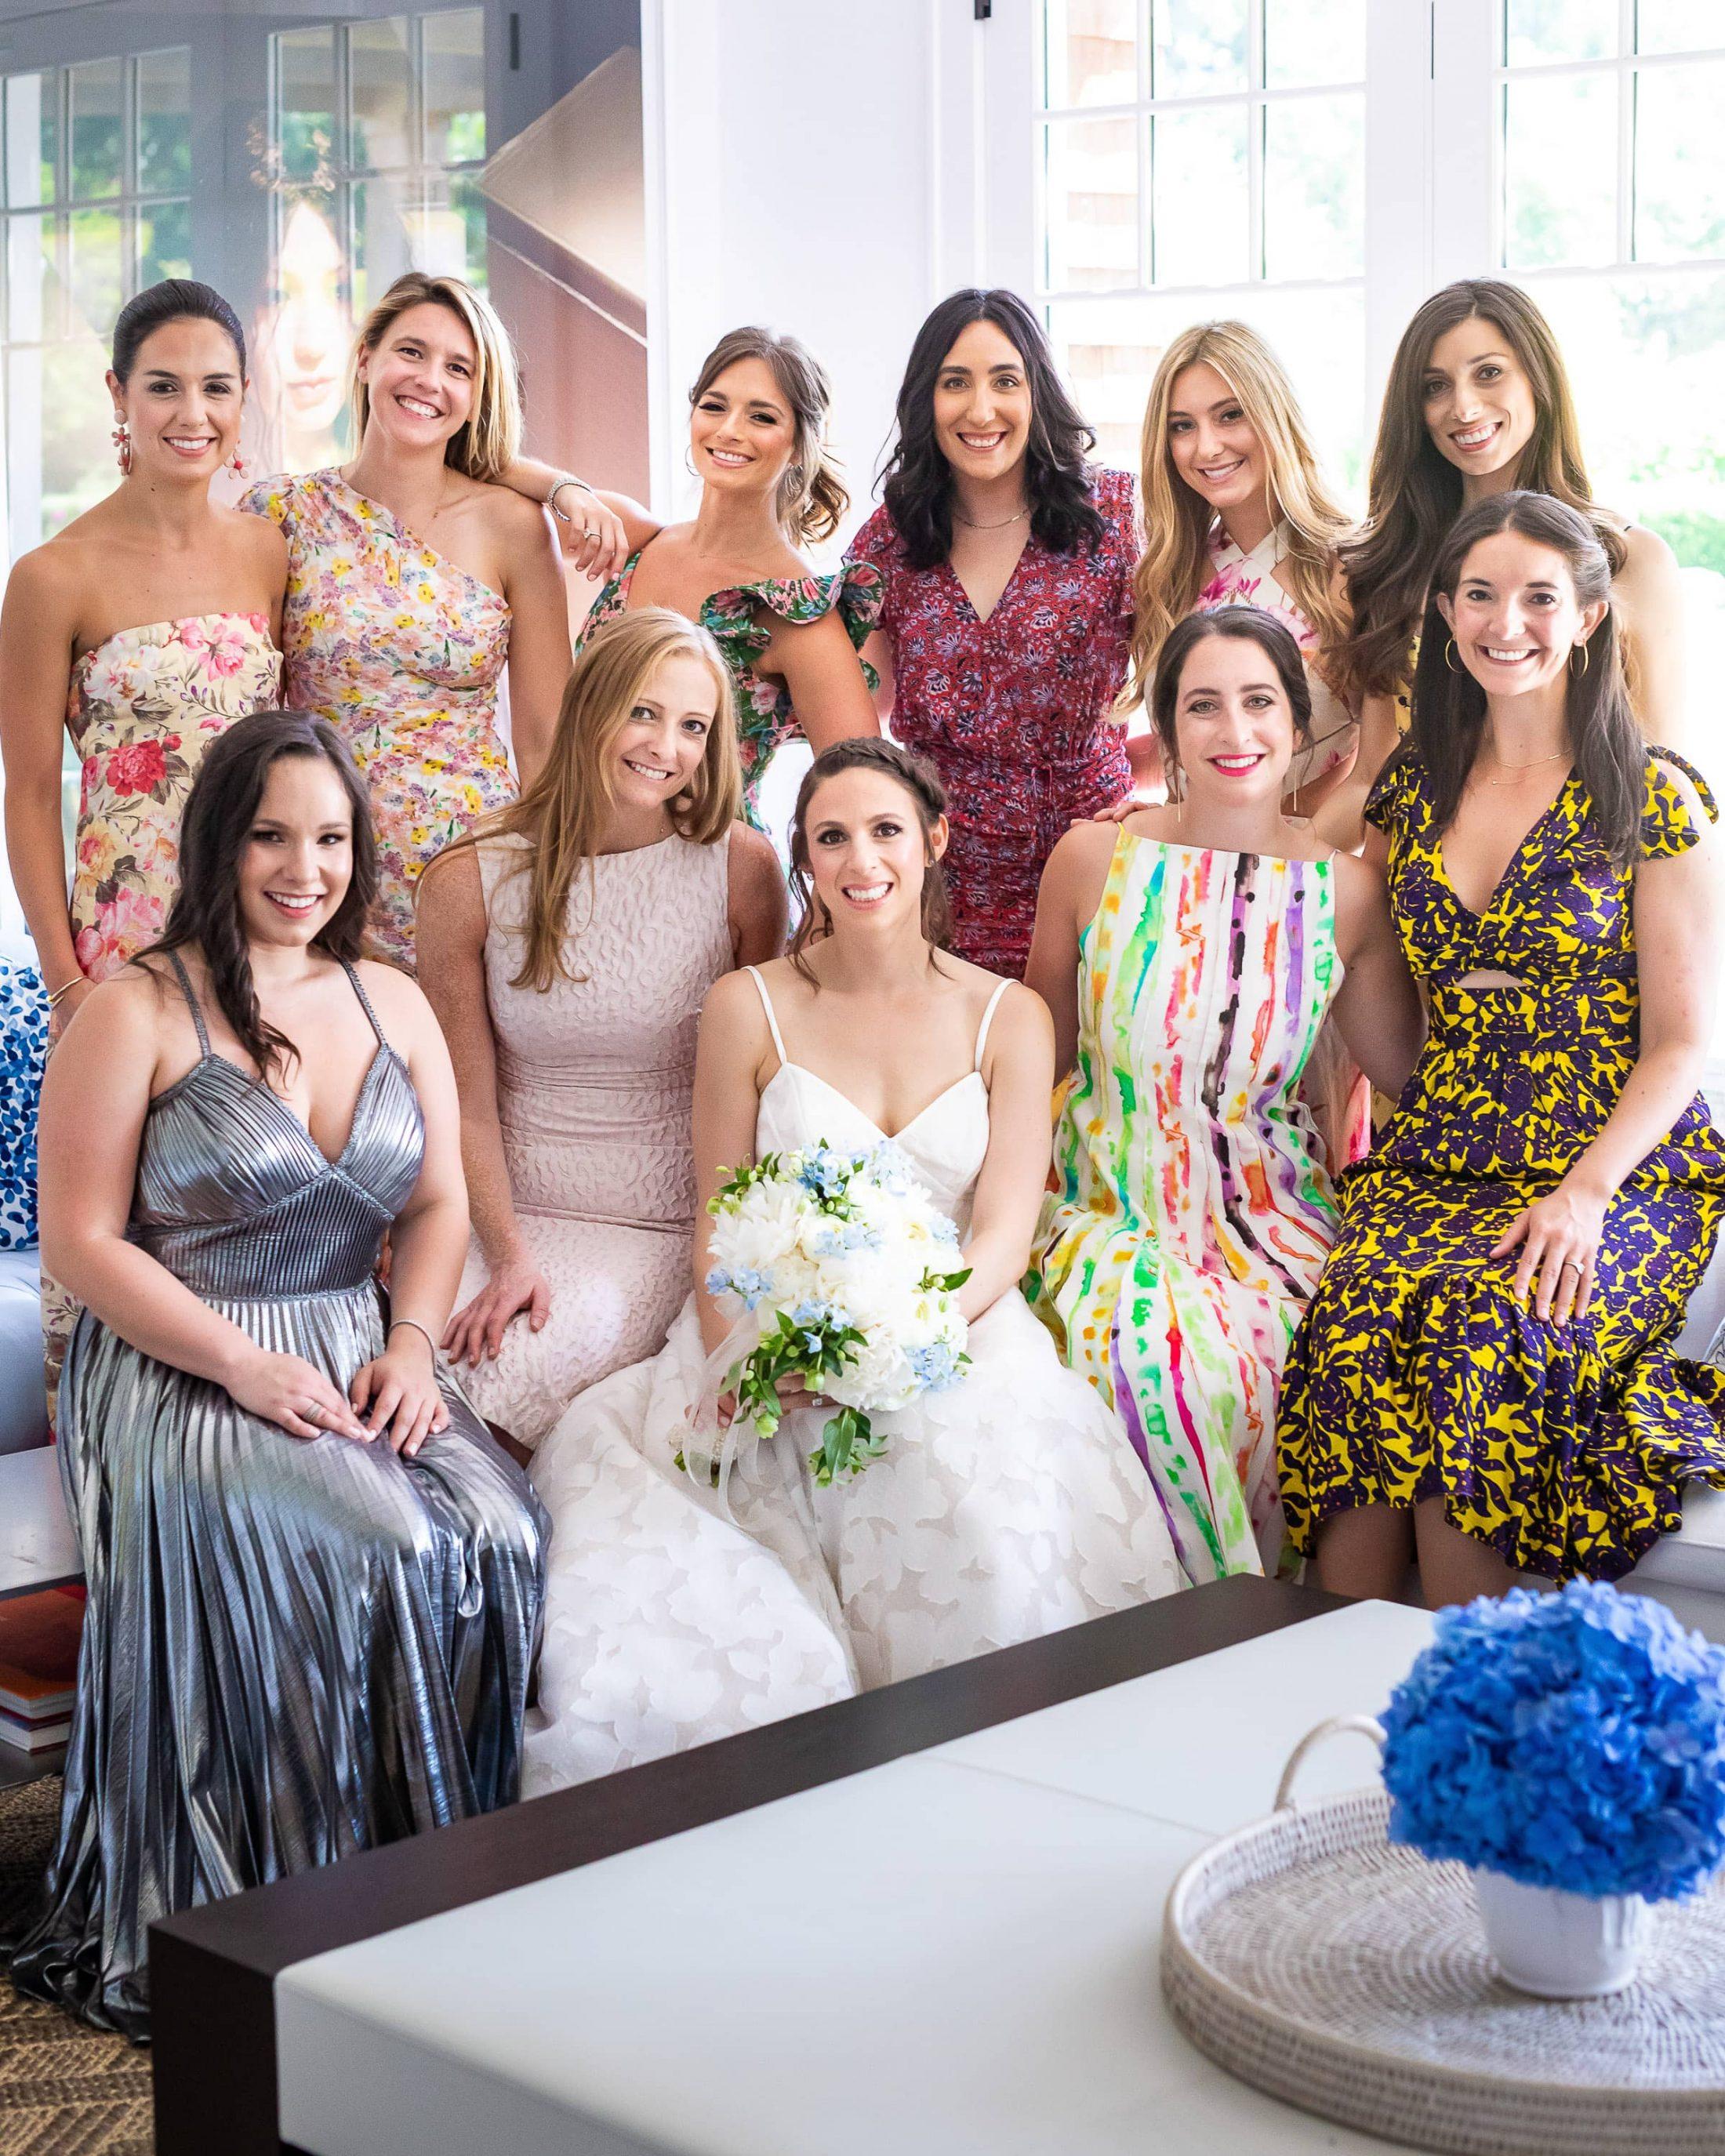 Bride with bridesmaids at this Hamptons wedding weekend held at The Parrish Museum | Photo by Roey Yohai Studio